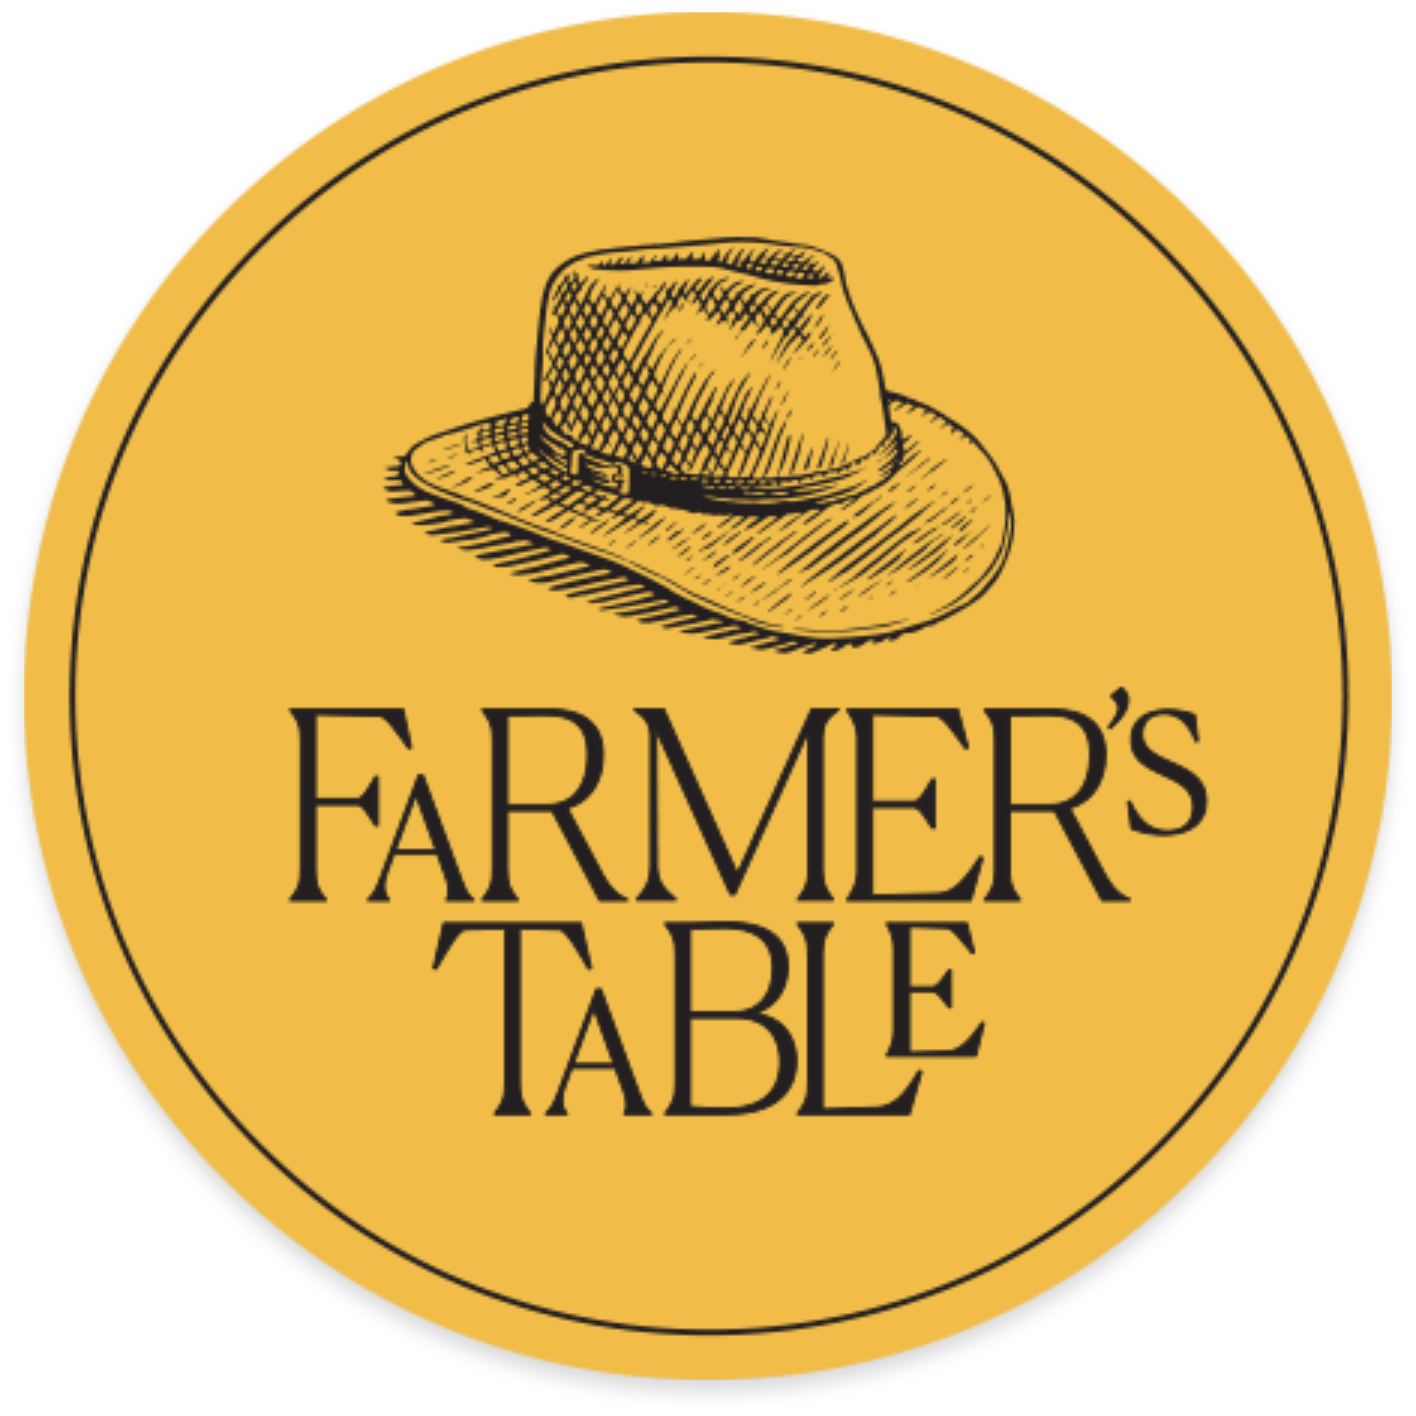 Farmers table logo